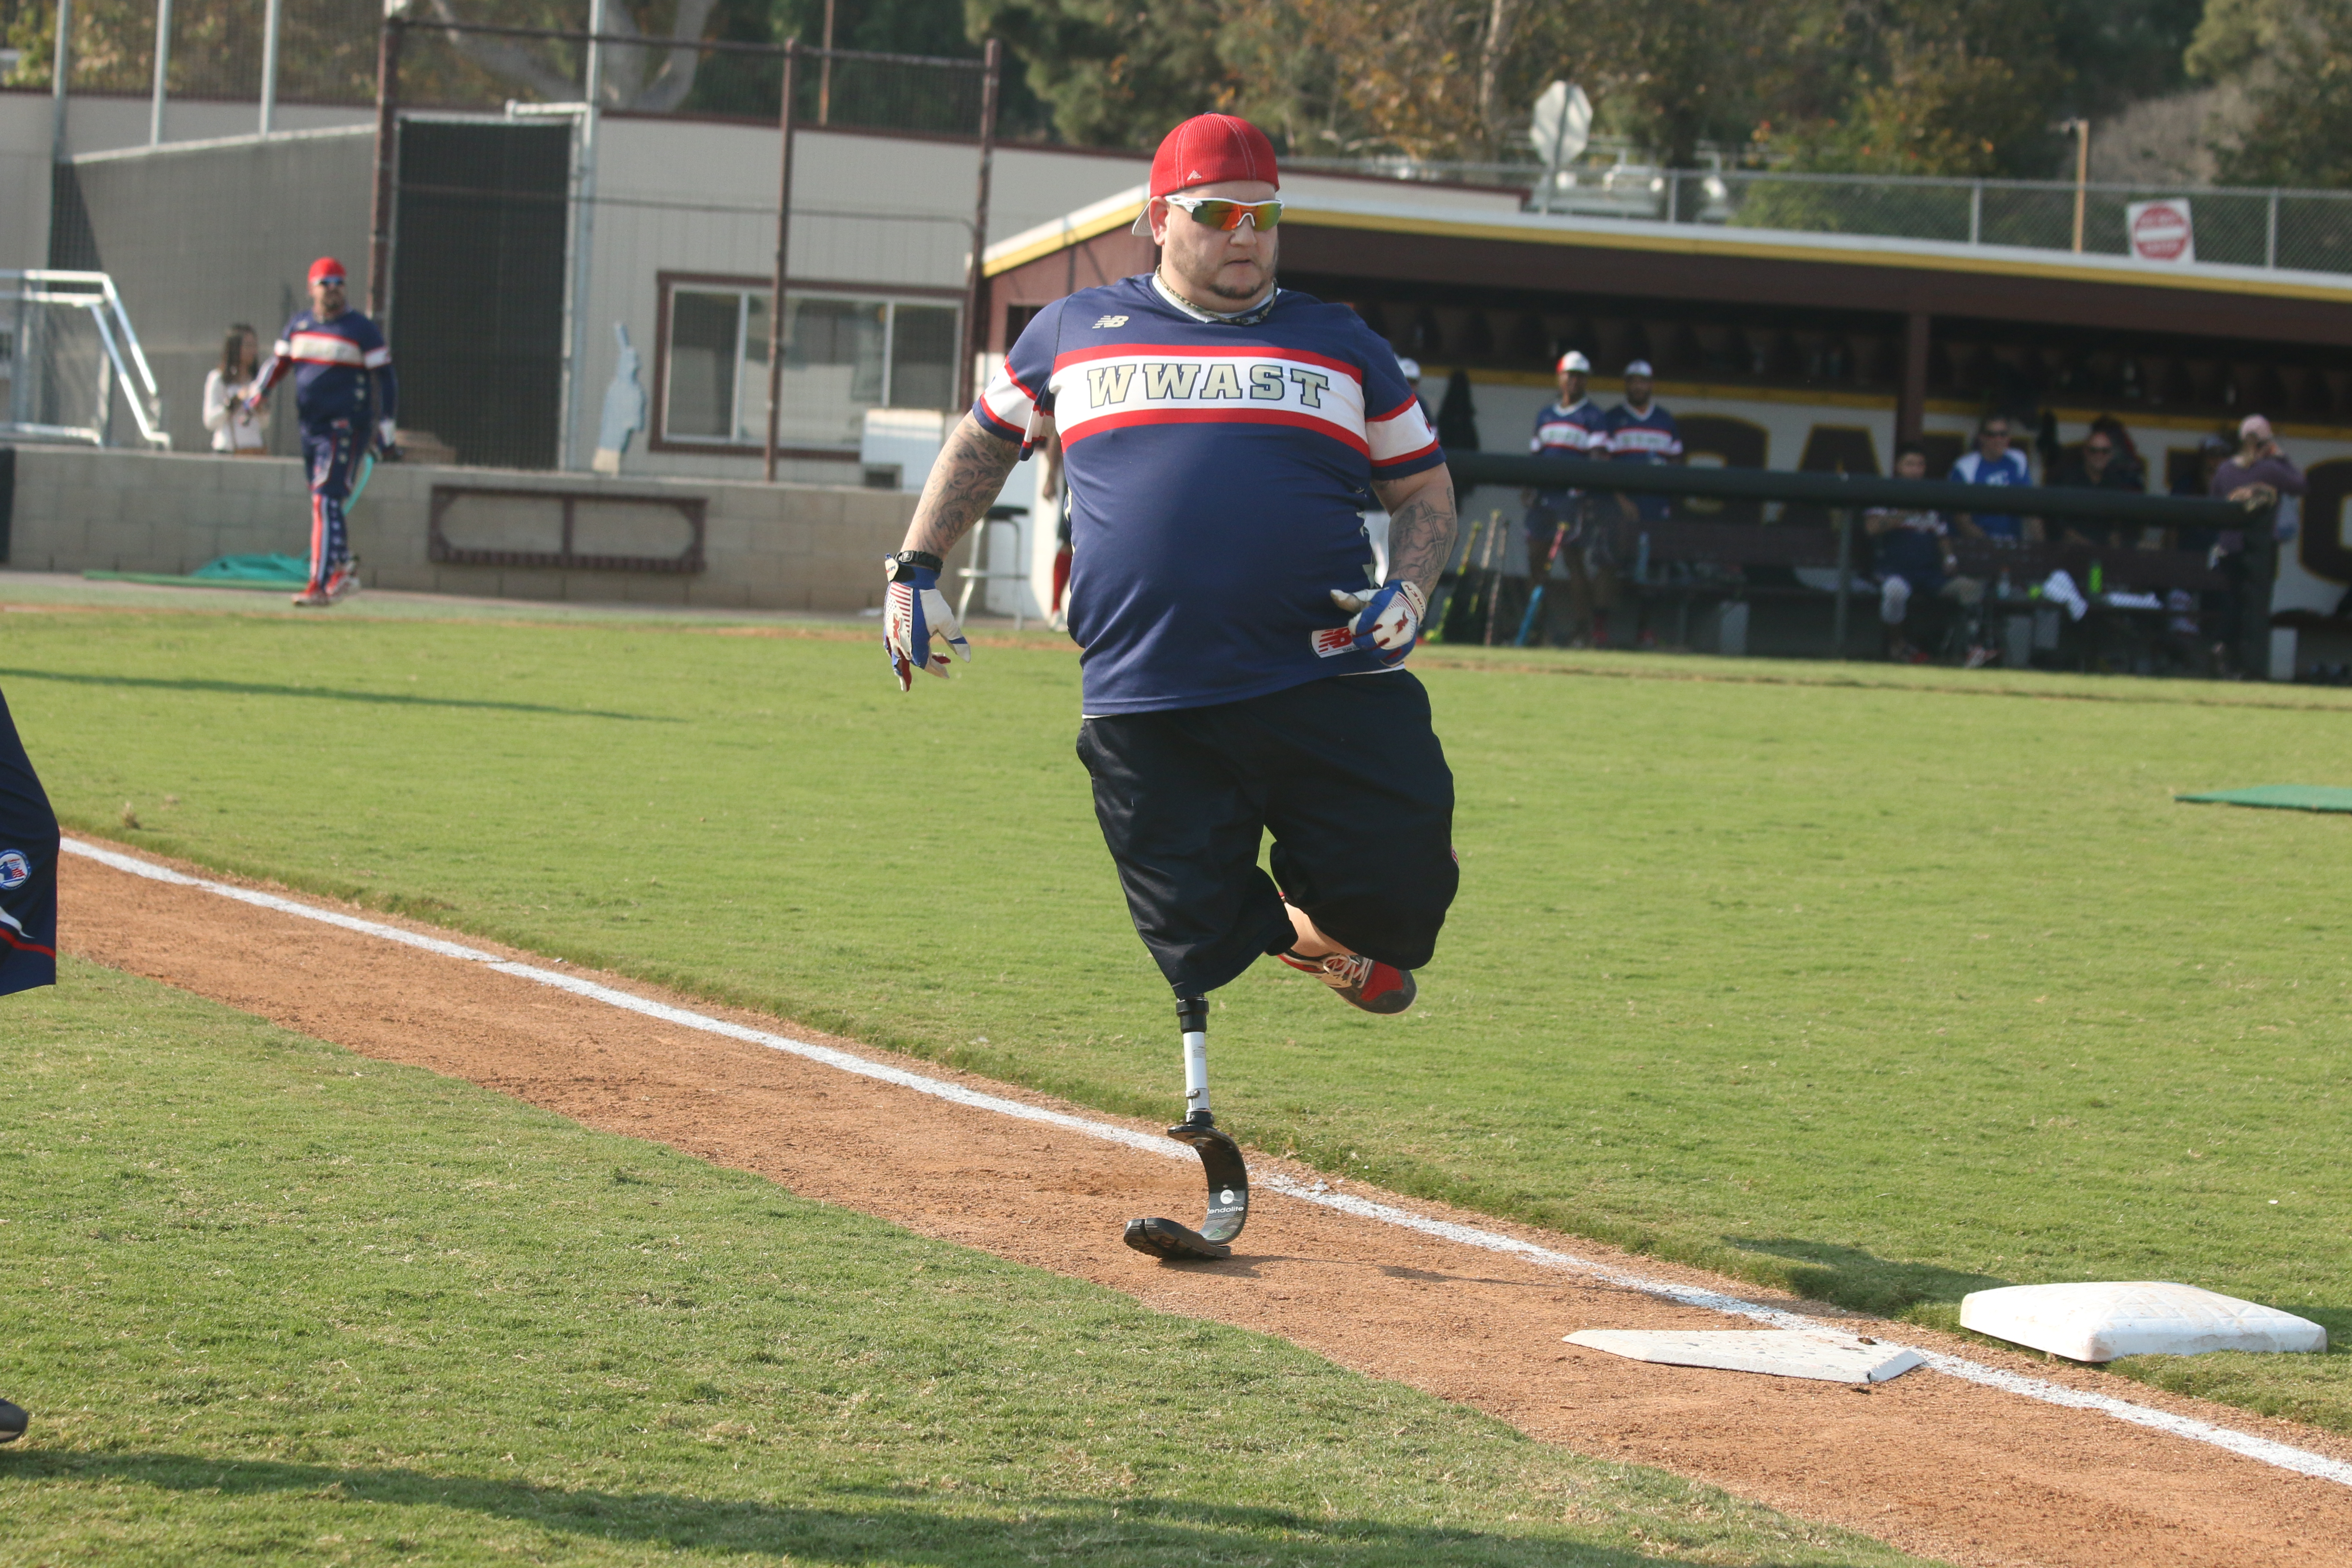 Josh Lopez, a U.S. Army veteran who had his right leg above the knee removed, runs to first base during the Wounded Warrior Amputee Softball Team match on Saturday, Nov. 10, at Saddleback College.